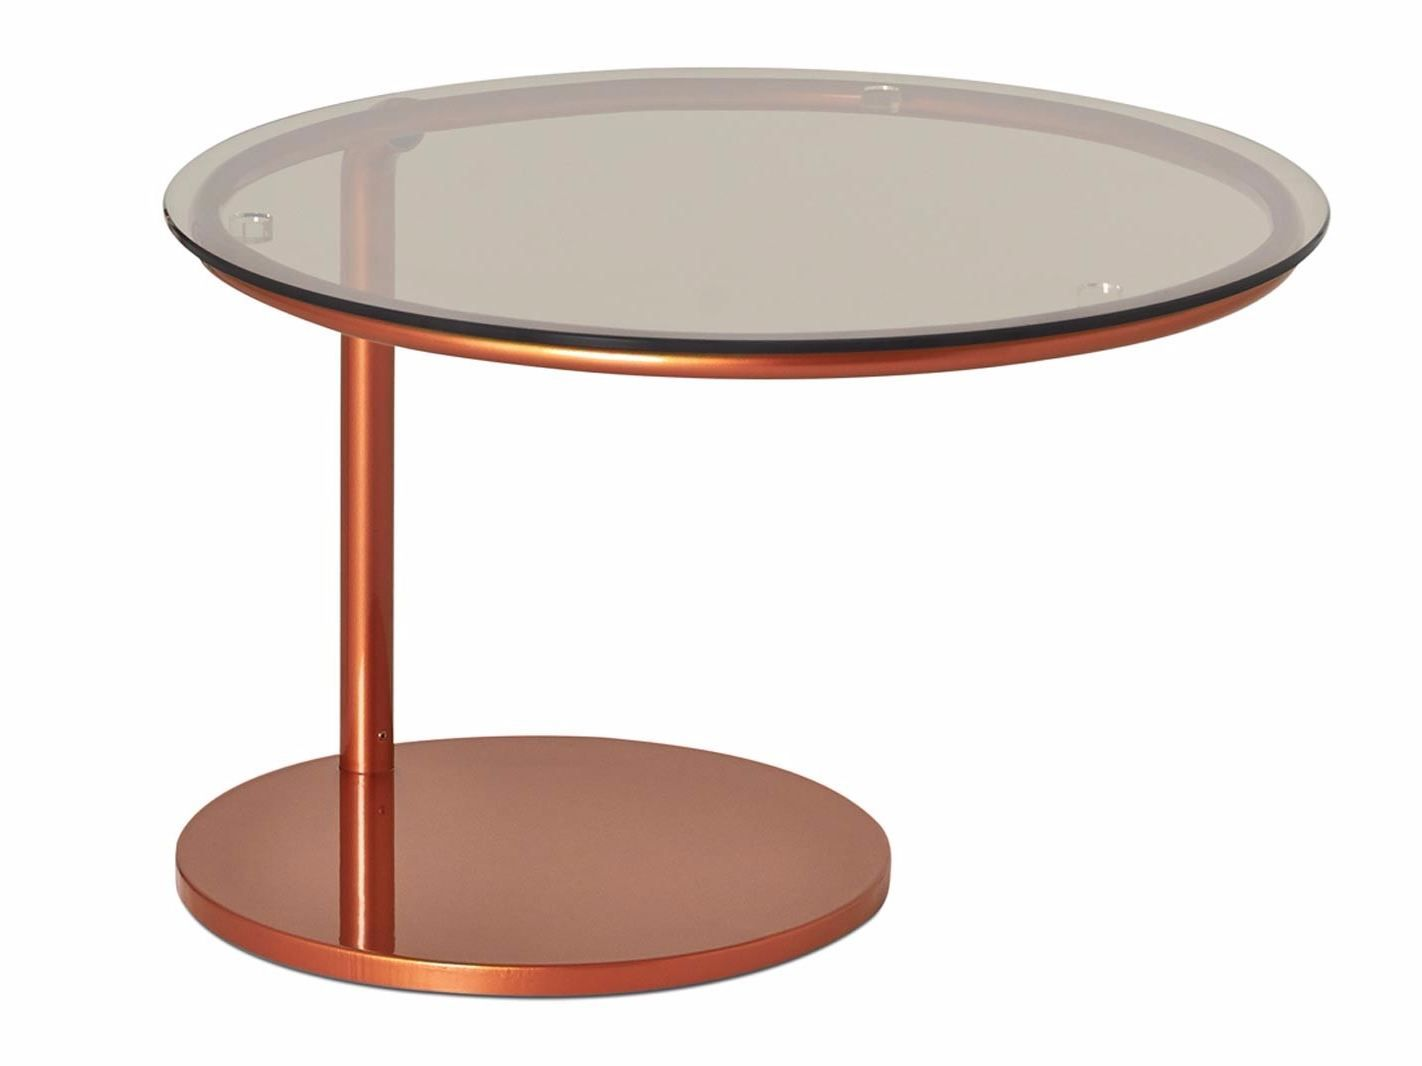 Round Side Table Vari T Able By Niumii Side Table Round Side Table Table [ 1066 x 1422 Pixel ]